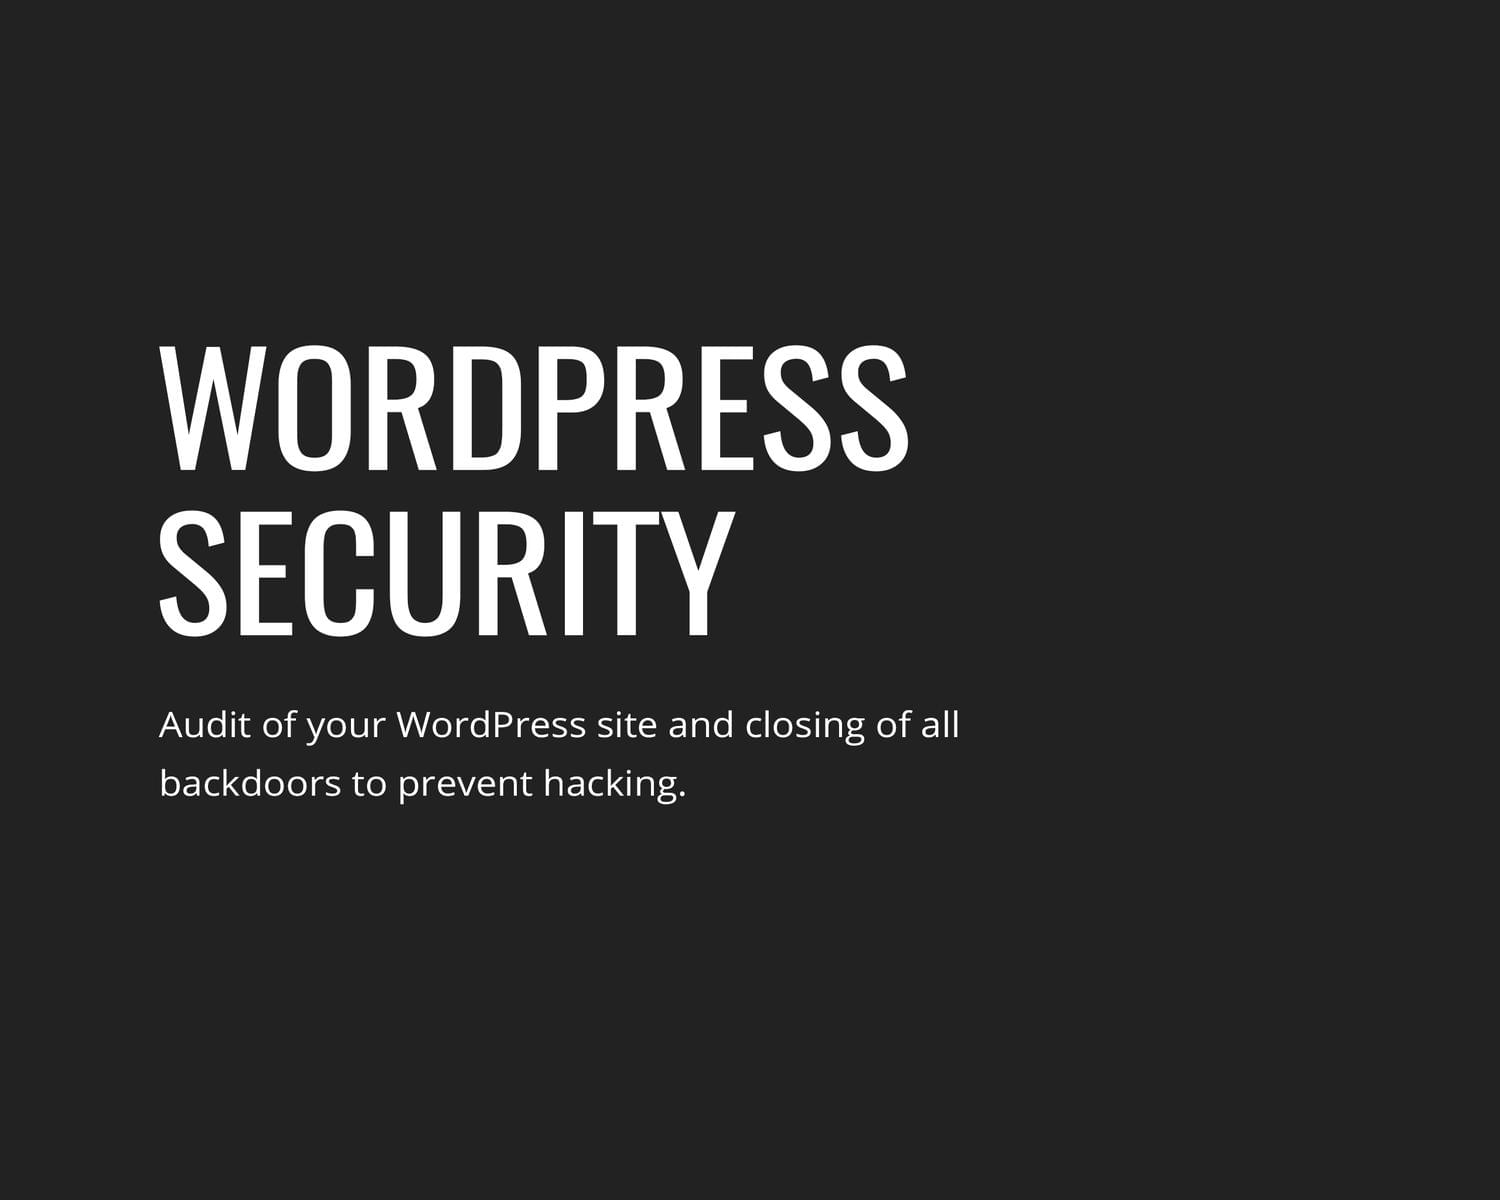 Express Security Wordpress Service by gljivec - 114604